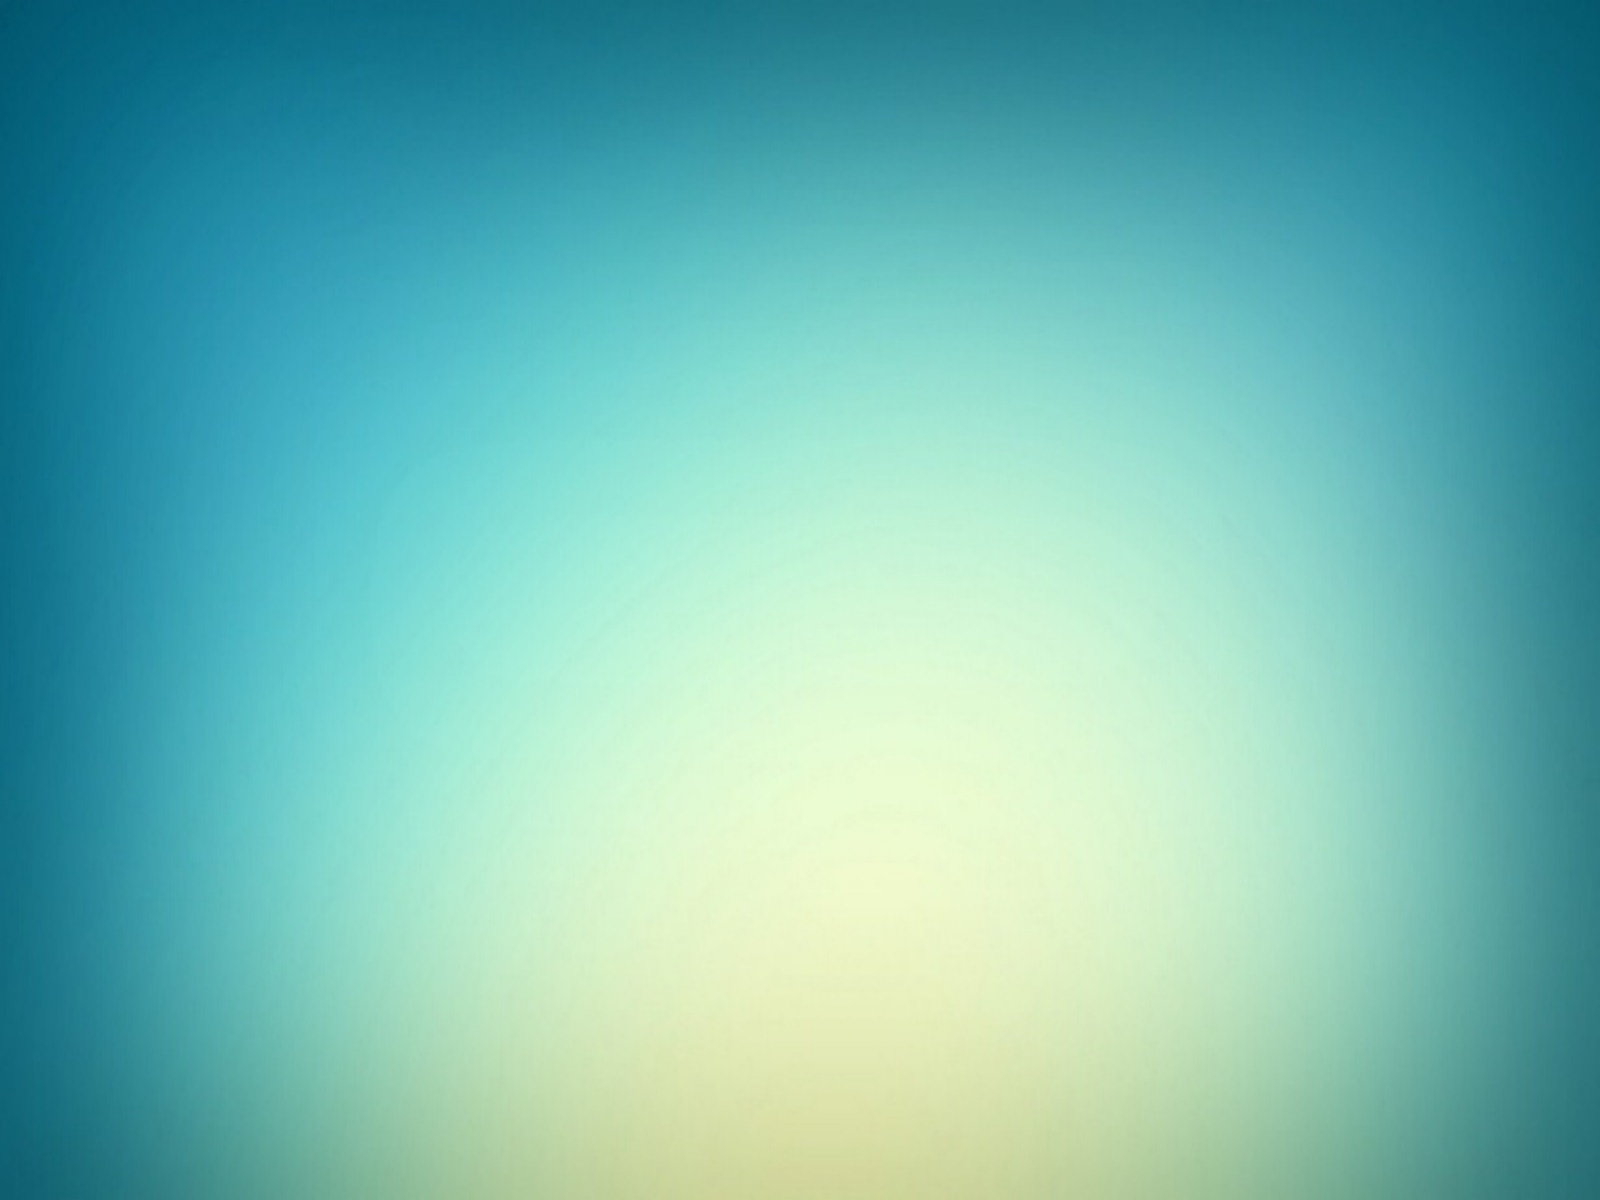 Free Simple Phone Backgrounds